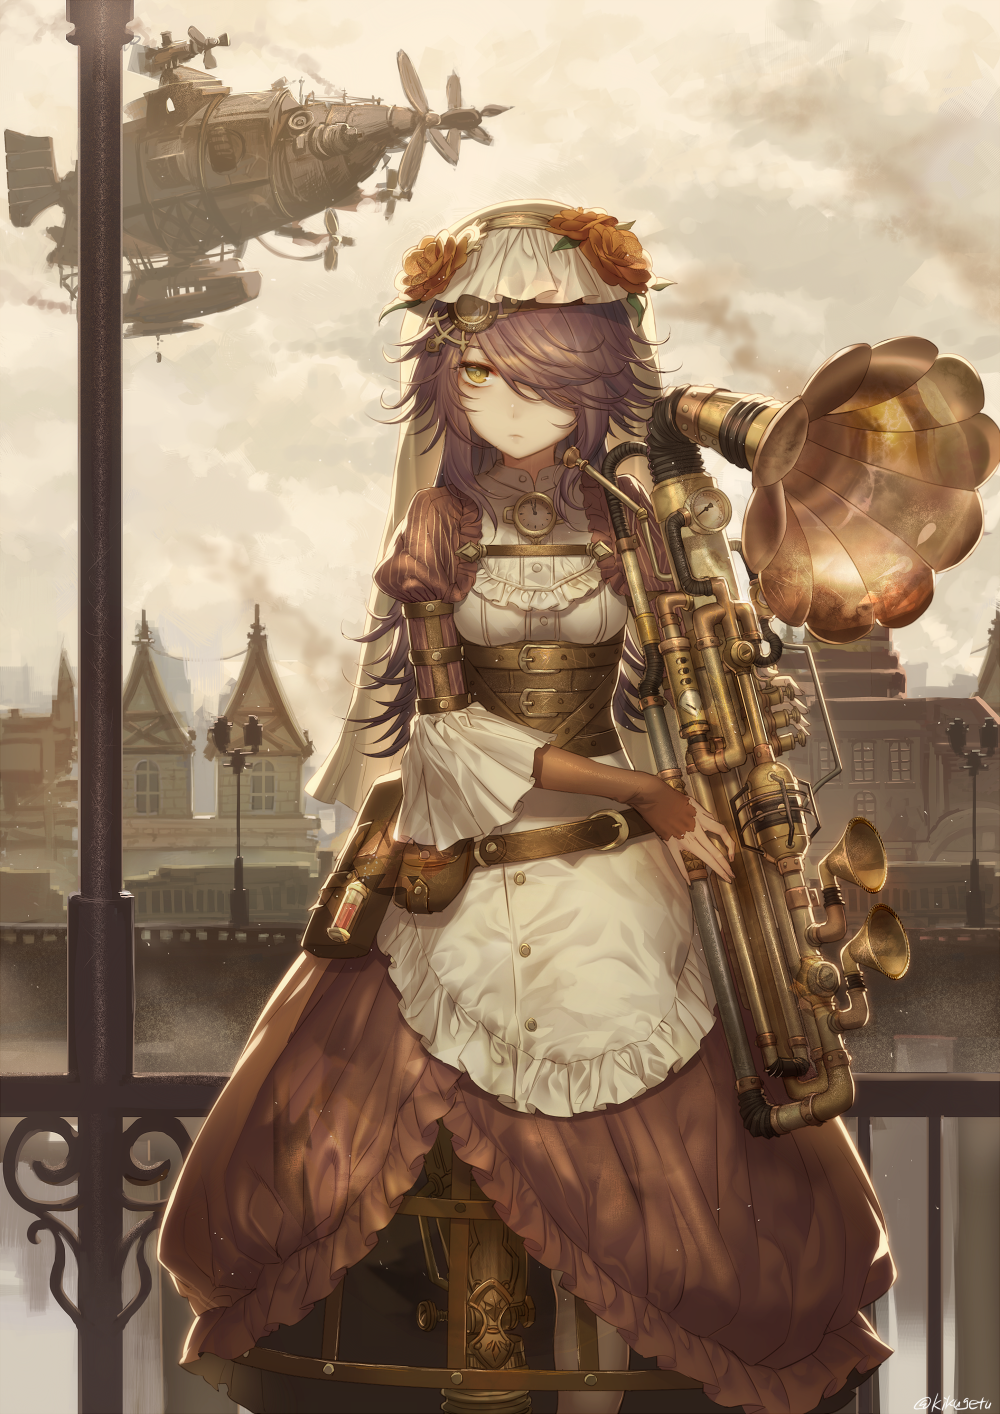 anime girl wallpaper alien space and steampunk